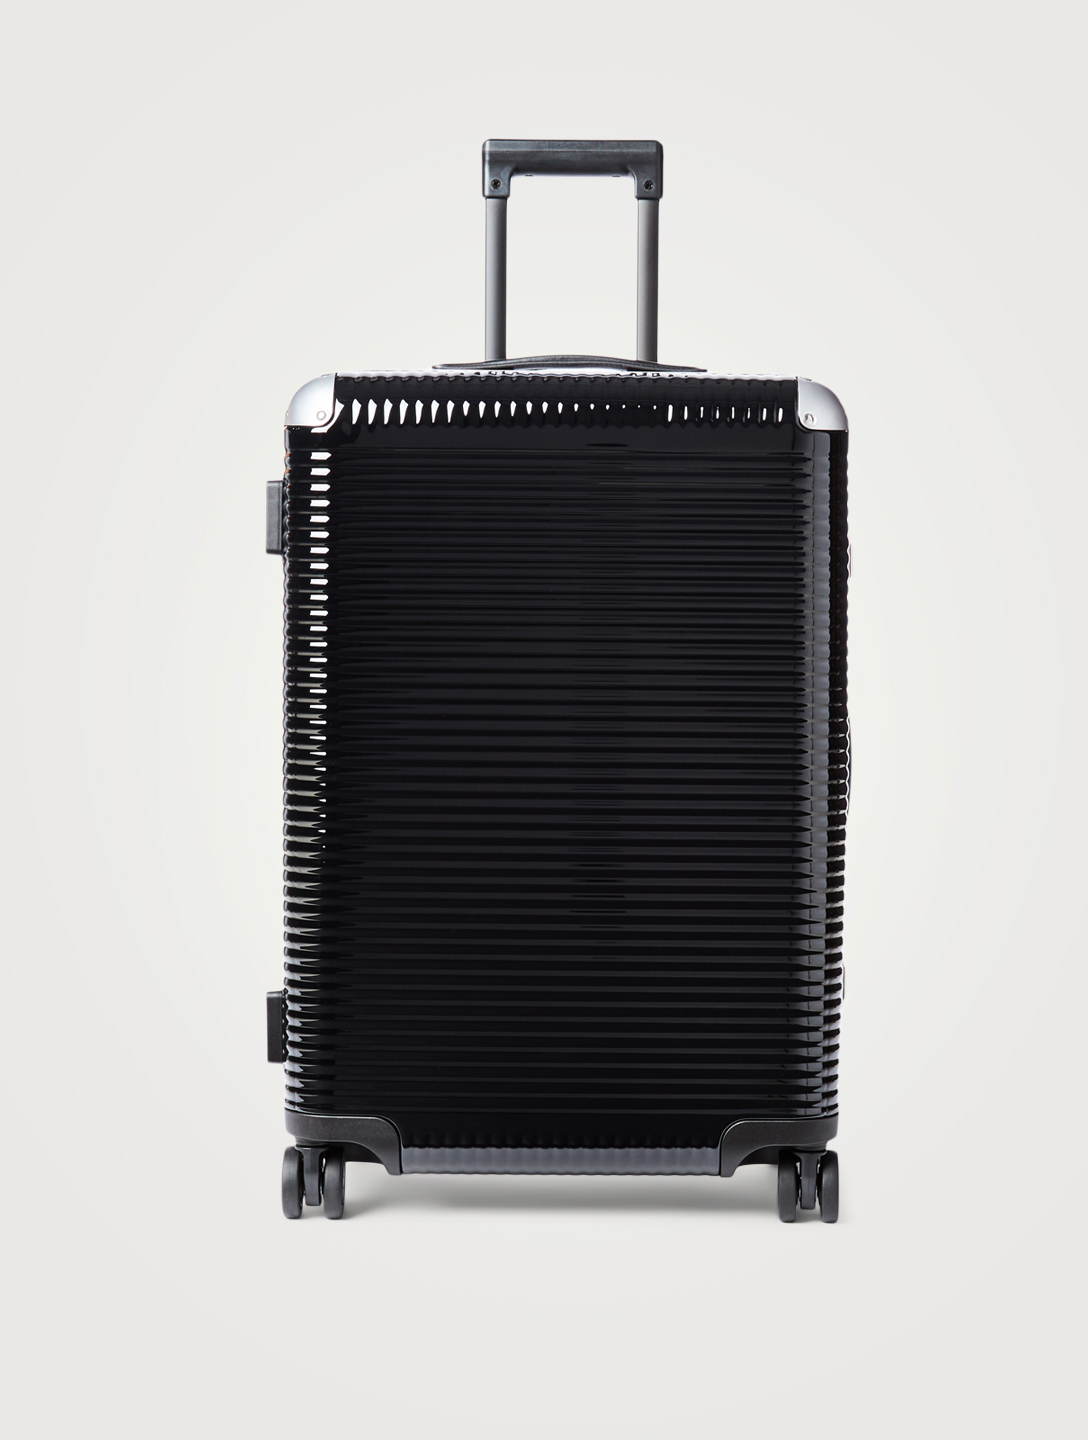 FPM Bank Light Spinner 68 Suitcase Luggage Black